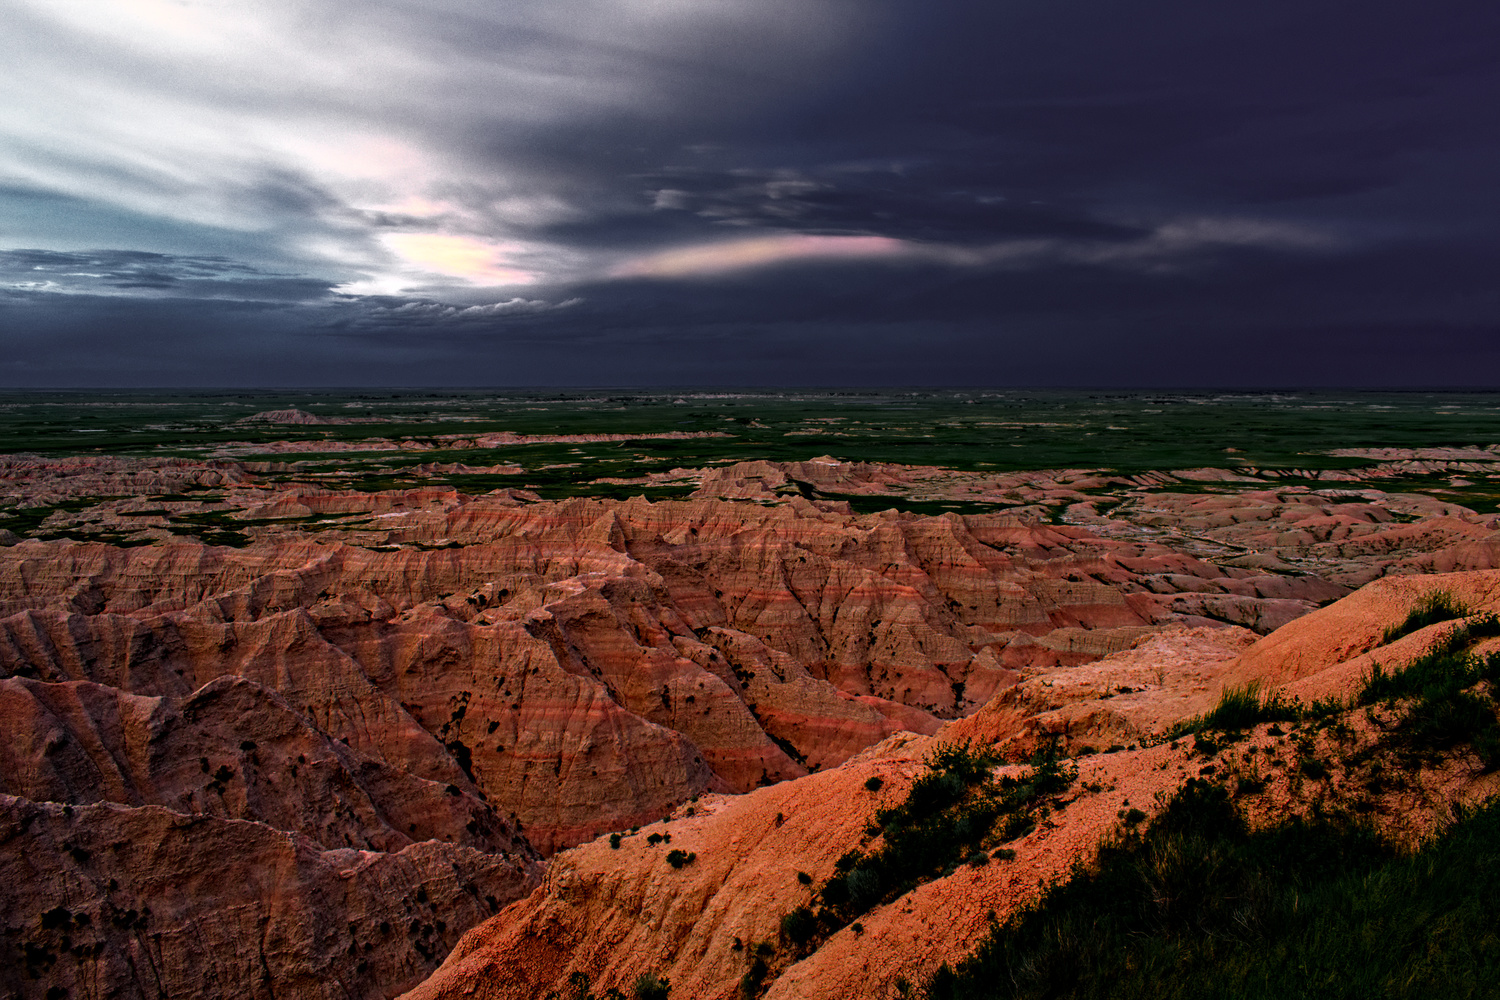 Cliff Side View of the Badlands by Tong Thao